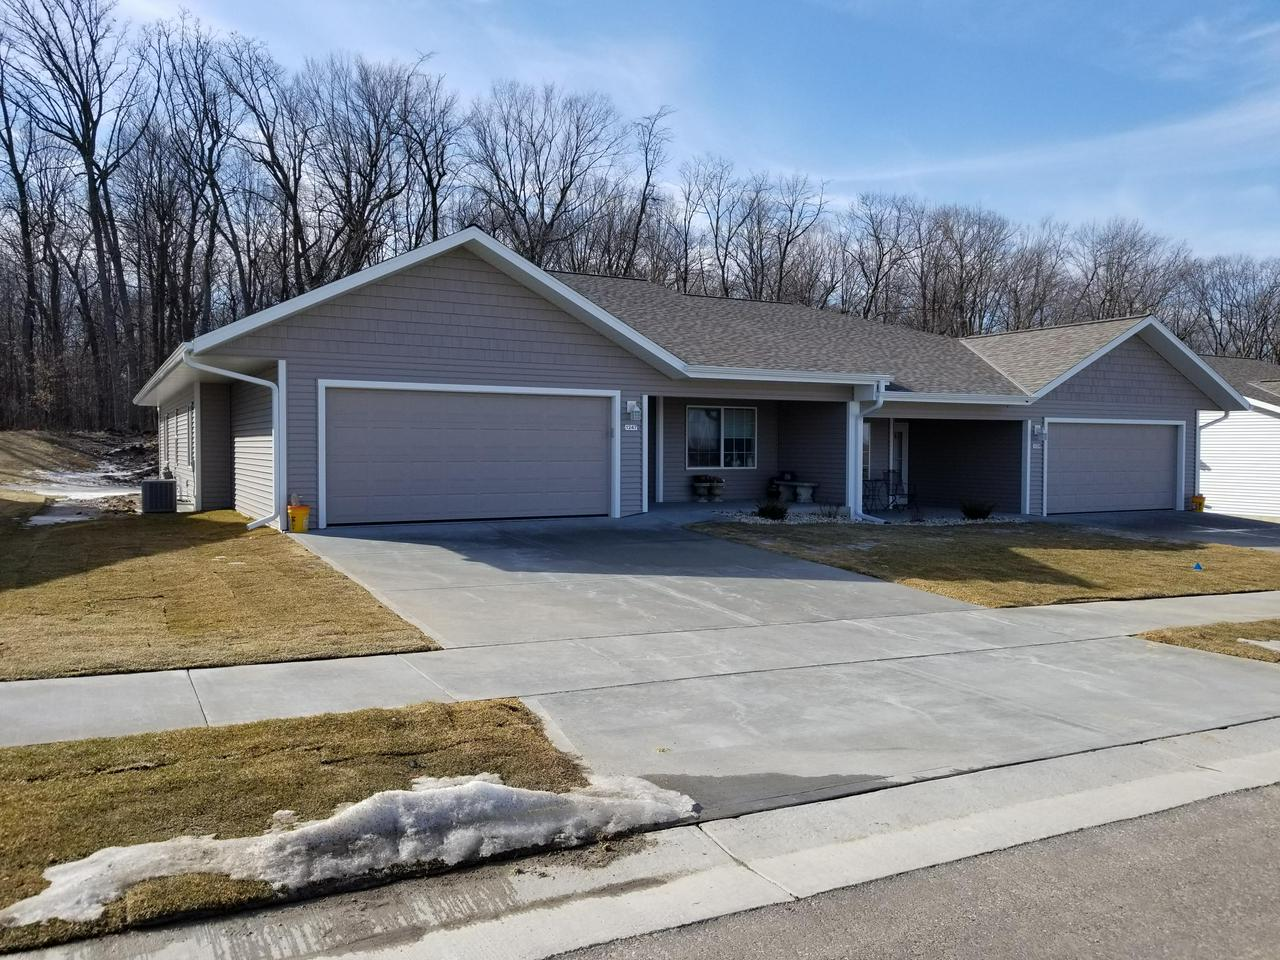 New construction for 2019.  1st floor senior ranch ready to move in Spring of 2019.  3BR, 2Ba, 2 car garage, utility/storage room, snack bar, pantry, 1,700 sq ft.  No step at front and garage, unfinished walk-out basement included.  Walk in closets, 3' wide doors.  Front covered sitting porch.  Choose countertops, lights, flooring.  Clubhouse - Hall with Den/Library/Game Room/Patio.  Landscaping/Walks/Drives included.  City Sewer/Water/Streets/Sidewalks.  Low $105/mo fee.  Adjacent City Wooded park.  Garden area each unit.  Walk to shop/eat/bank/medical.  Sold out!